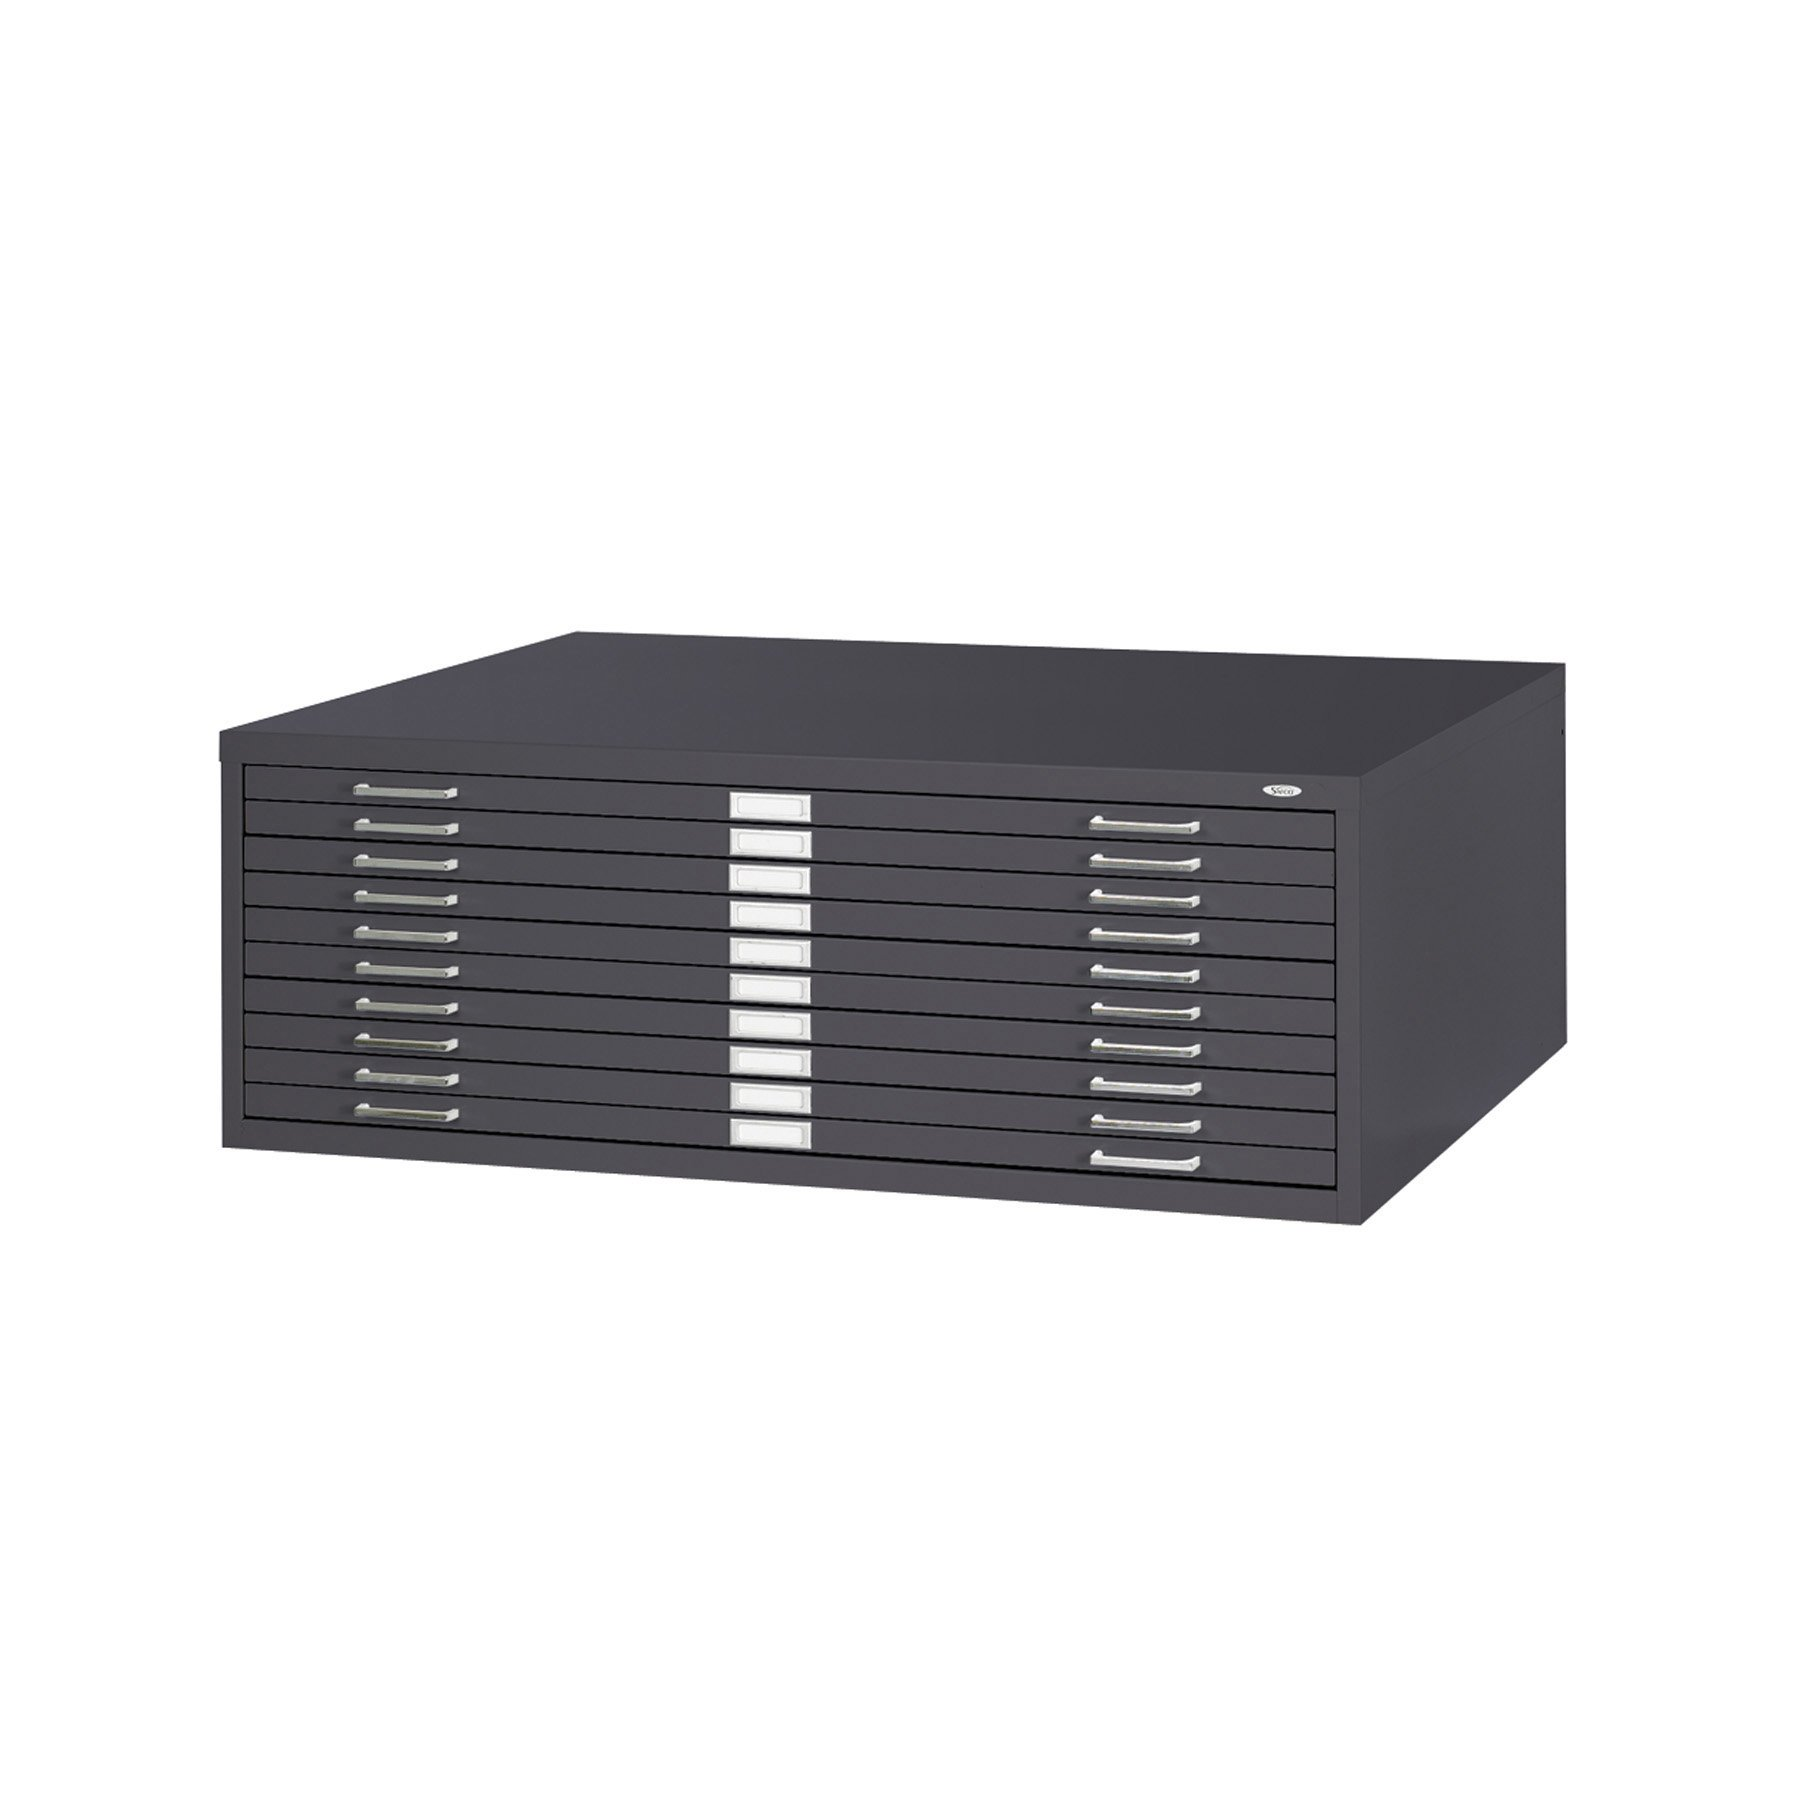 Safco Products 4986BL Flat File for 42''W x 30''D Documents, 10-Drawer (Additional options sold separately), Black